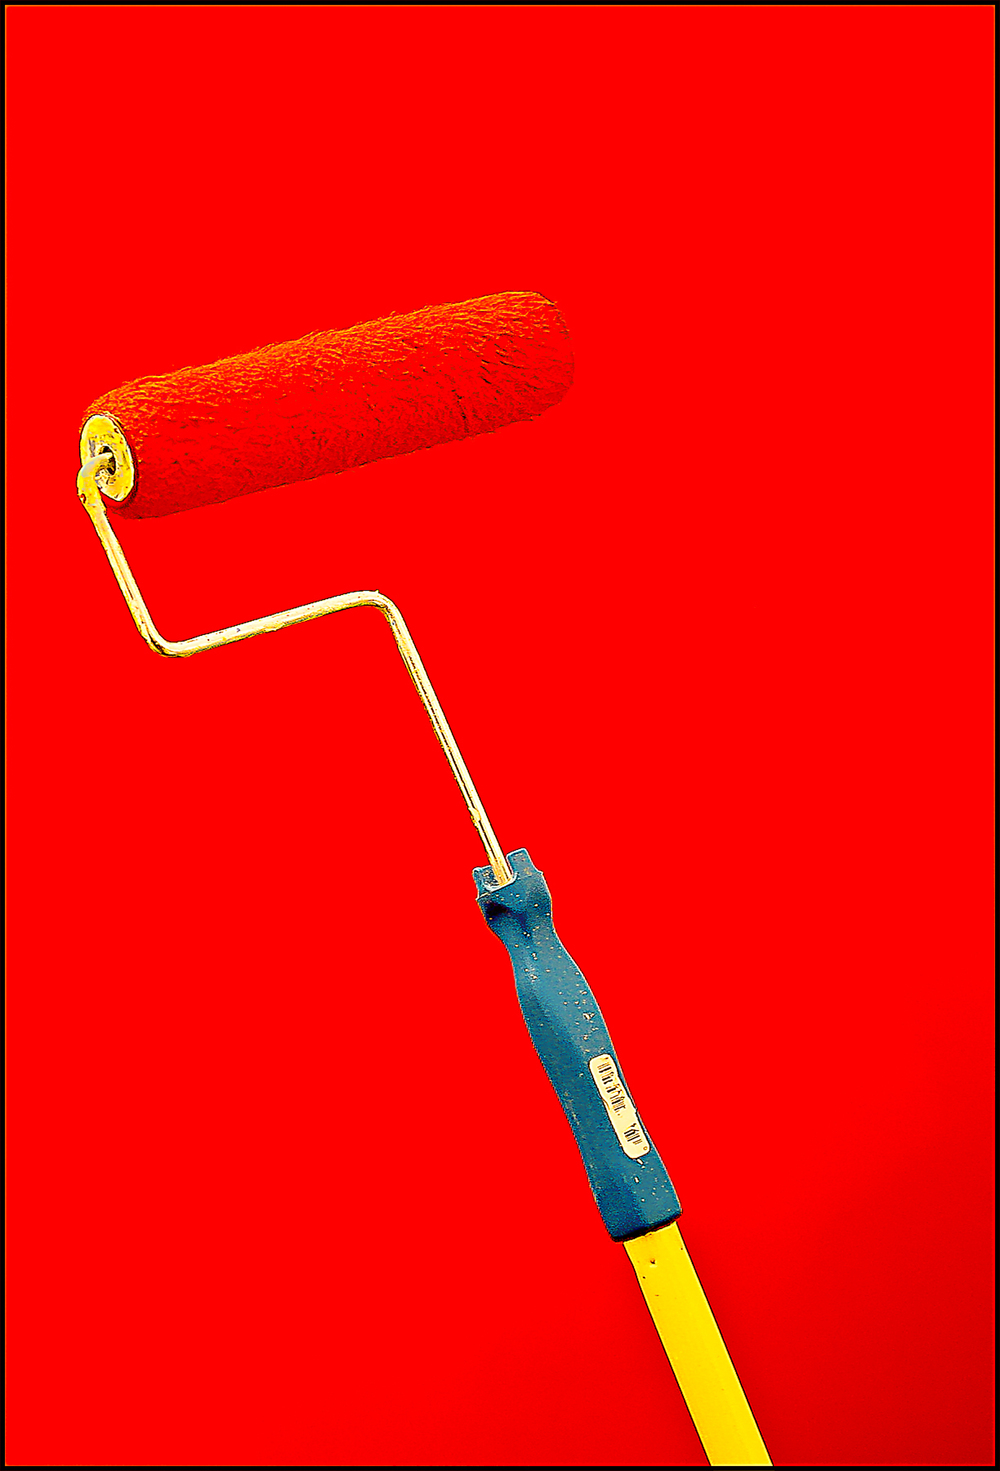 red paint roller. Copy.jpg